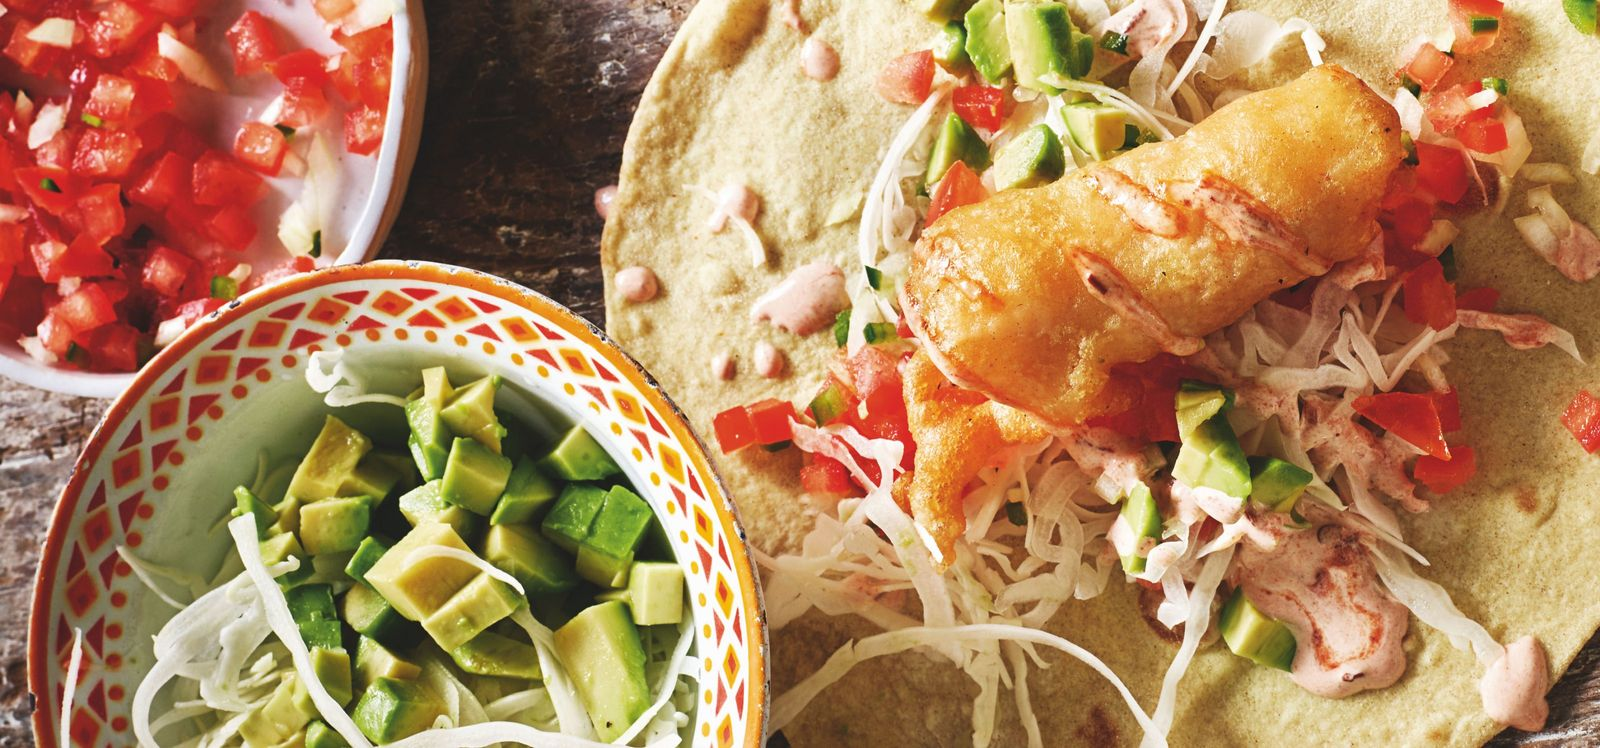 How to make it: Rick Stein's fish tacos recipe